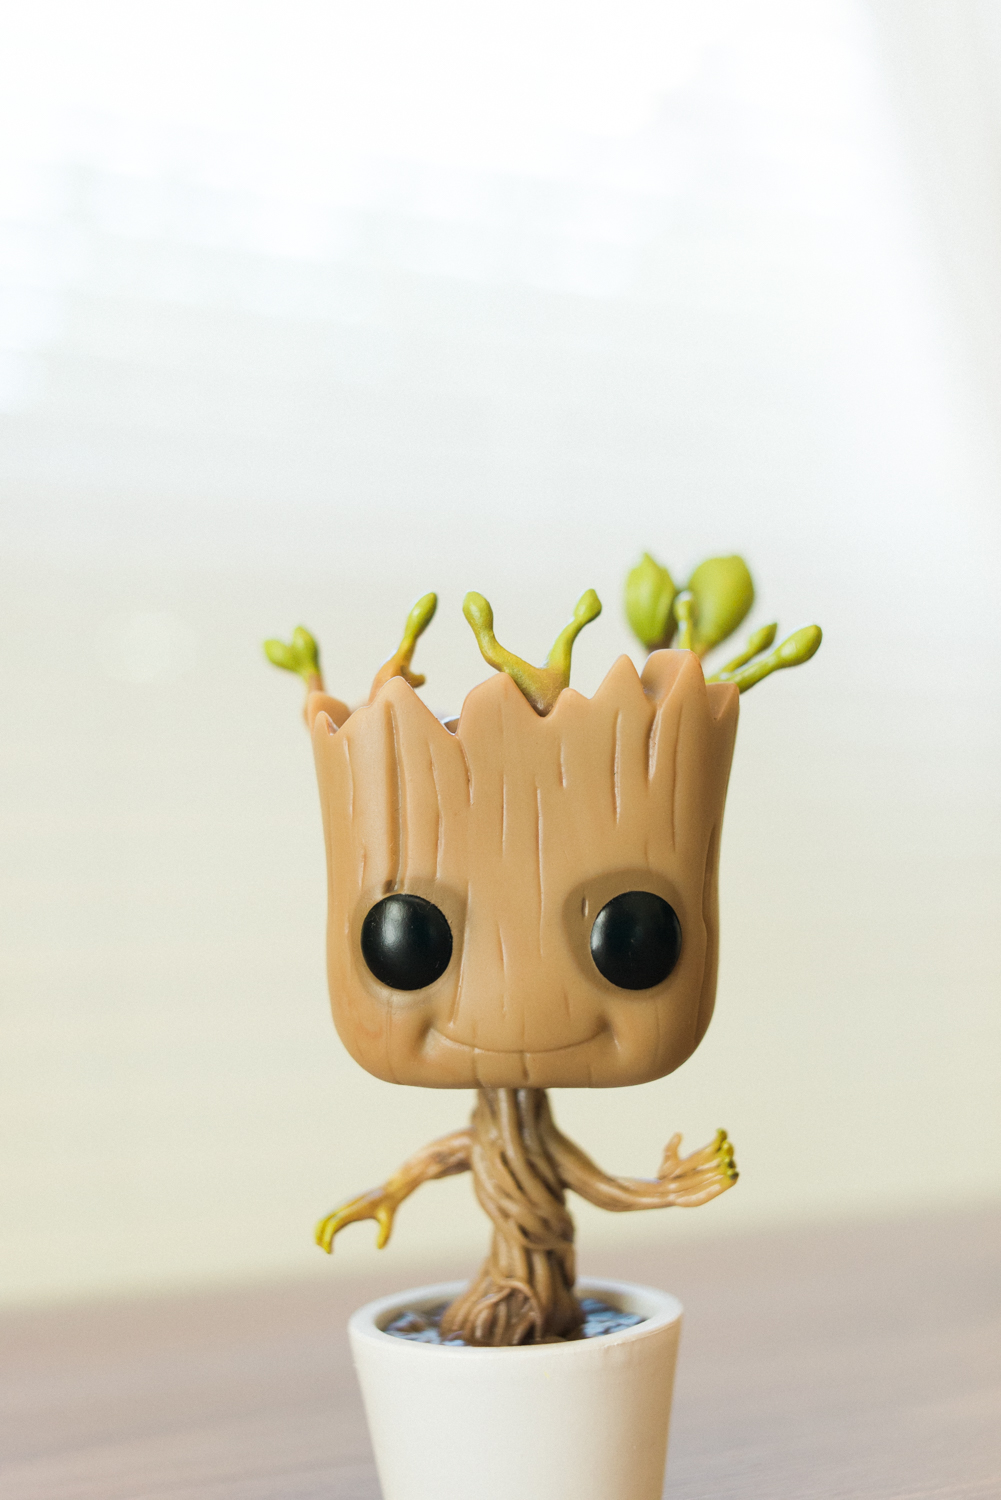 valentines-day-2015-portland-oregon-bobble-head-dancing-groot-shelley-marie-photo-2.jpg